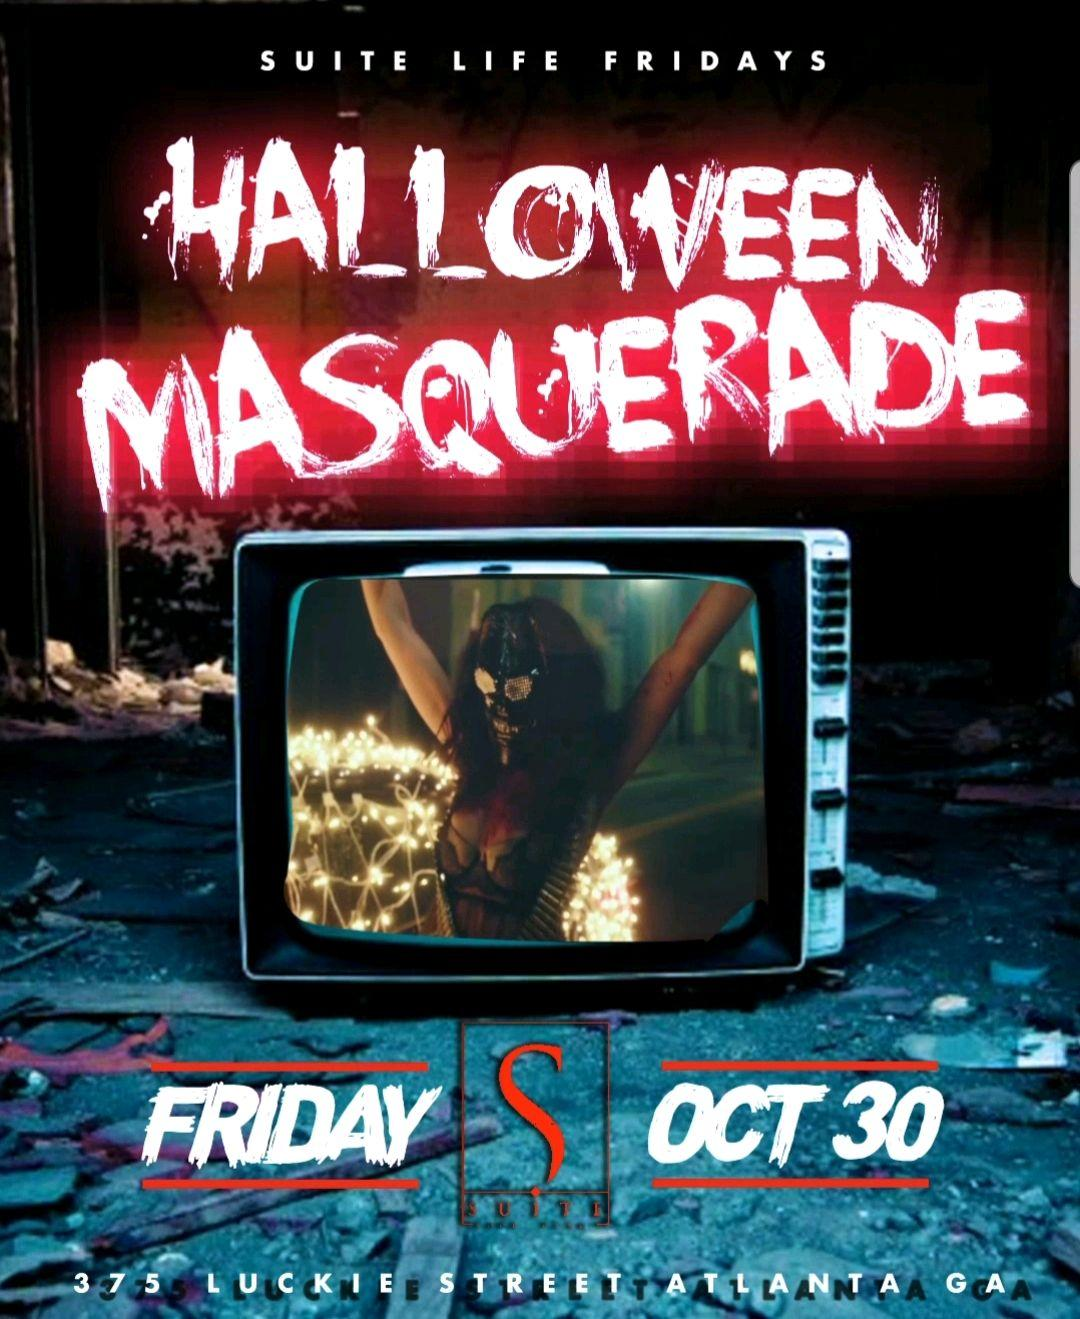 Suite Life Fridays Halloween Masquerade Party At Suite Lounge - RSVP NOW